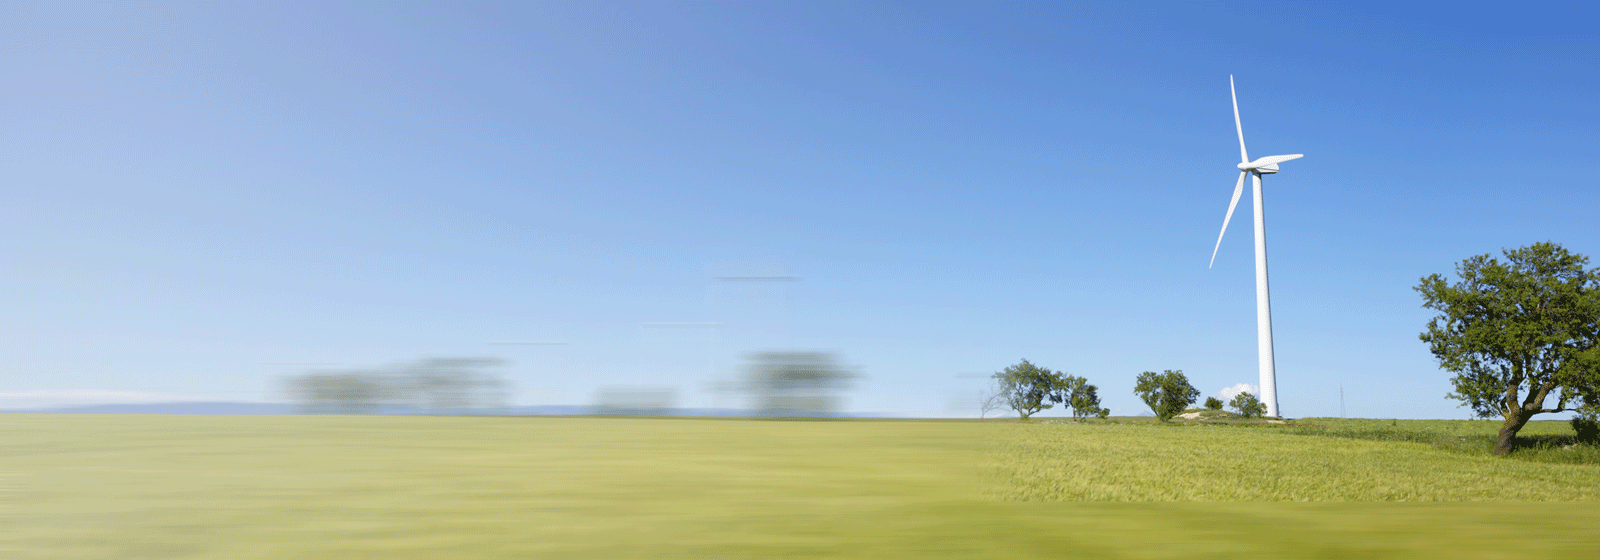 Field with a wind farm